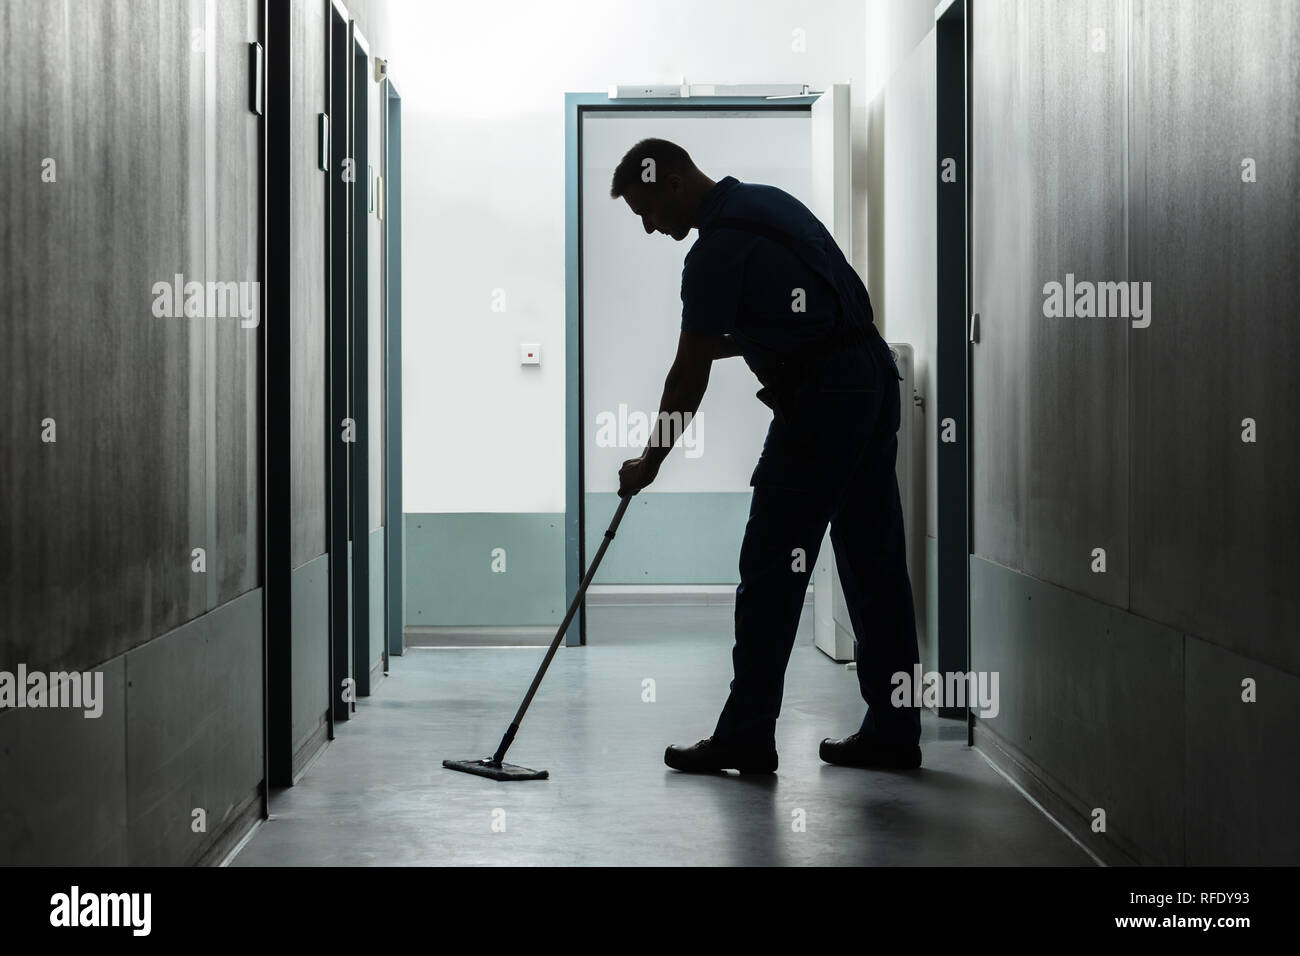 Side View Of Man Cleaning Floor With Mop - Stock Image